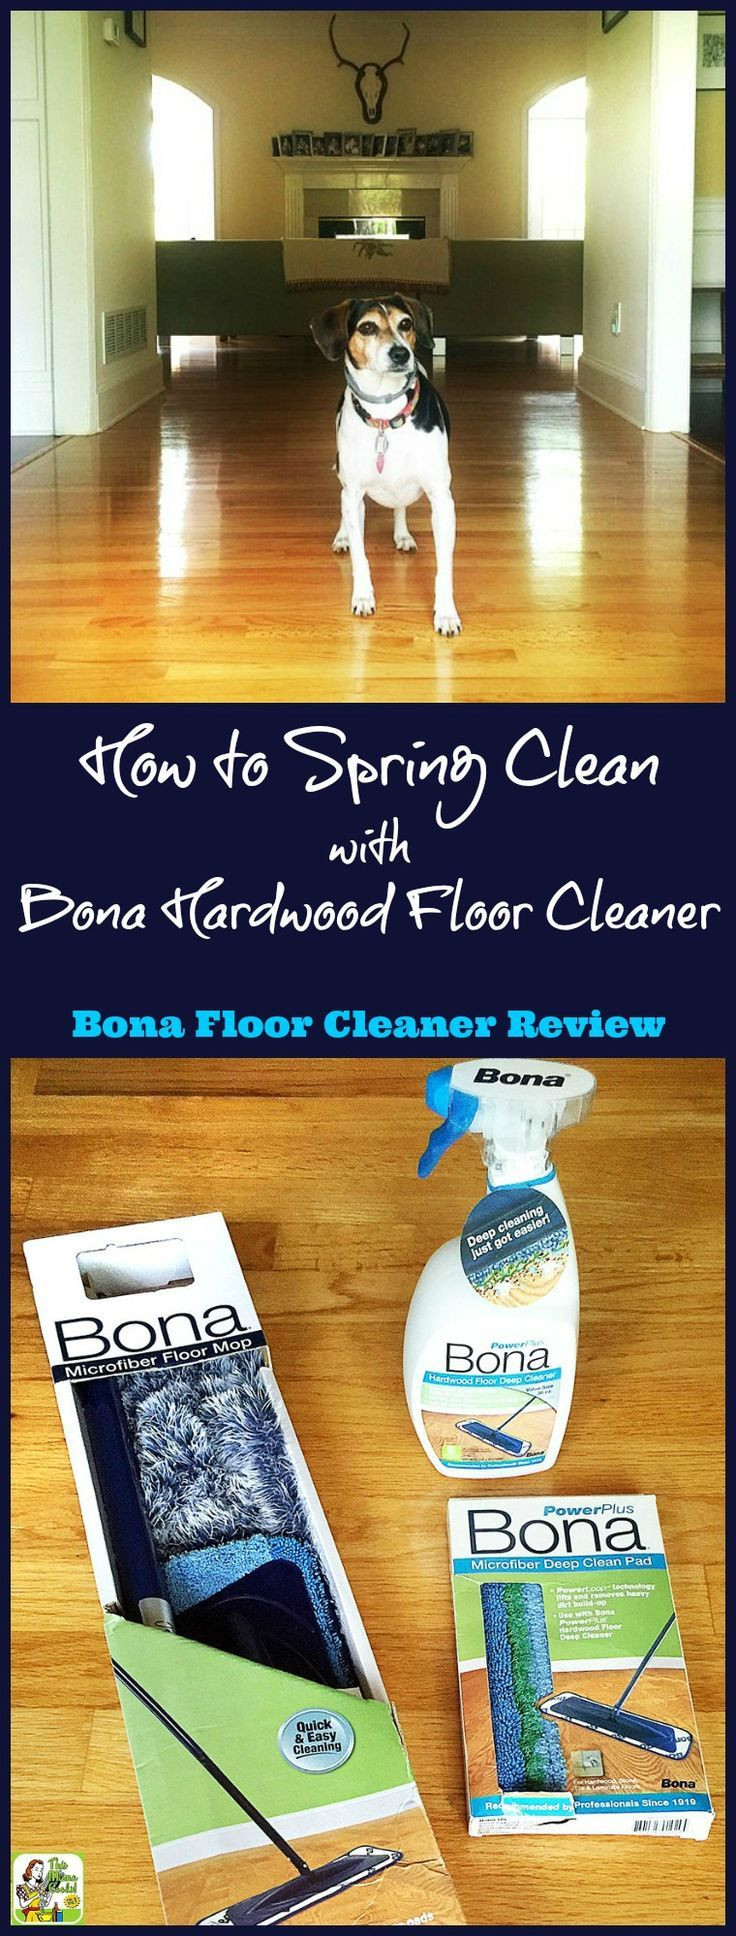 bona x hardwood floor cleaner reviews of got hardwood floors learn how to spring clean with bona hardwood intended for got hardwood floors learn how to spring clean with bona hardwood floor cleaner a